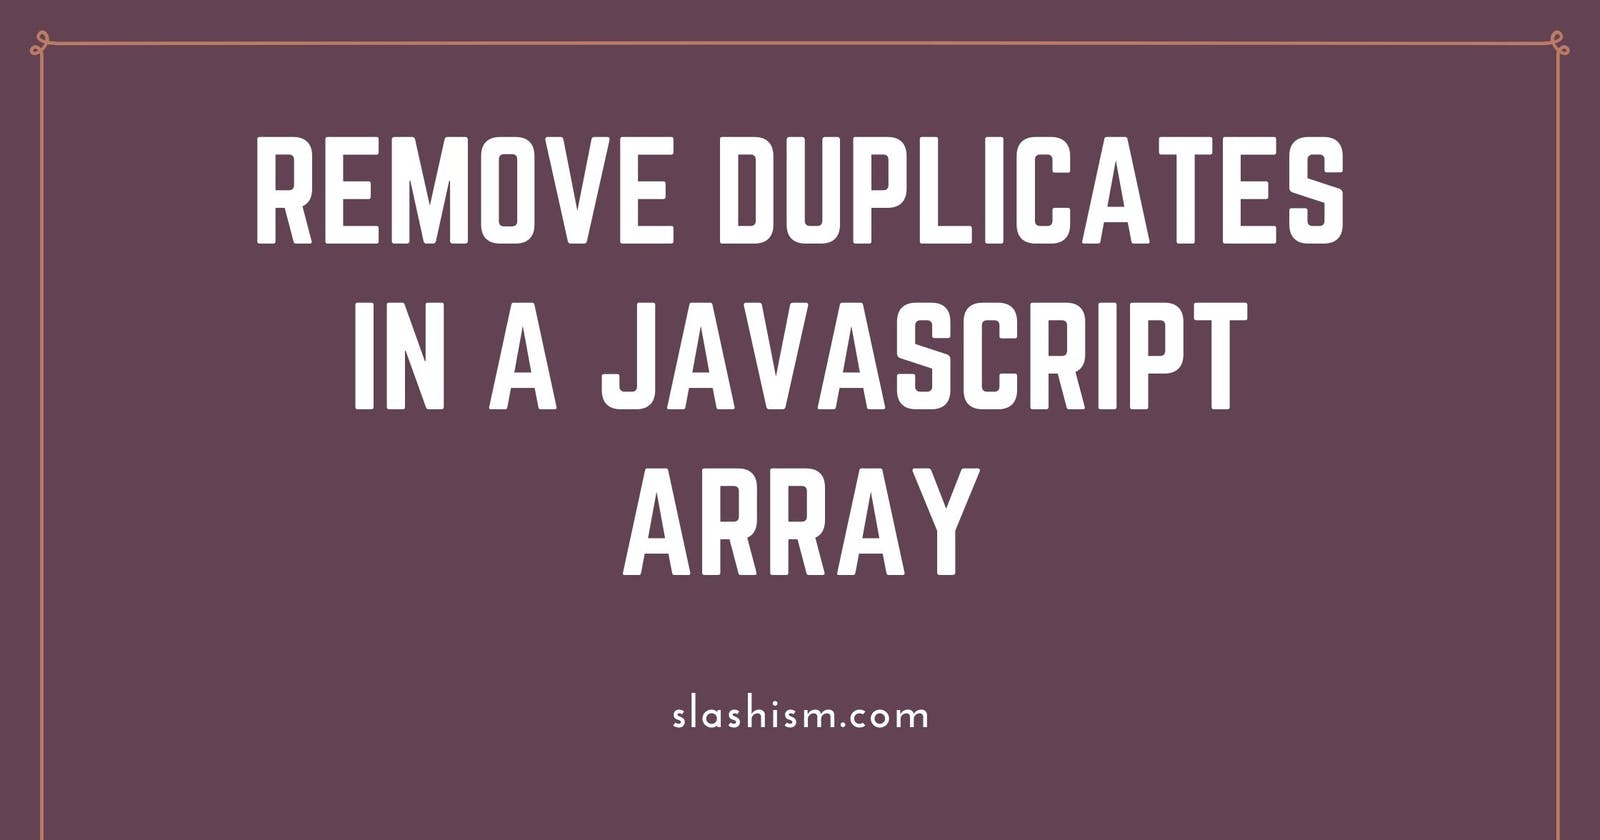 Remove Duplicates from a JavaScript Array